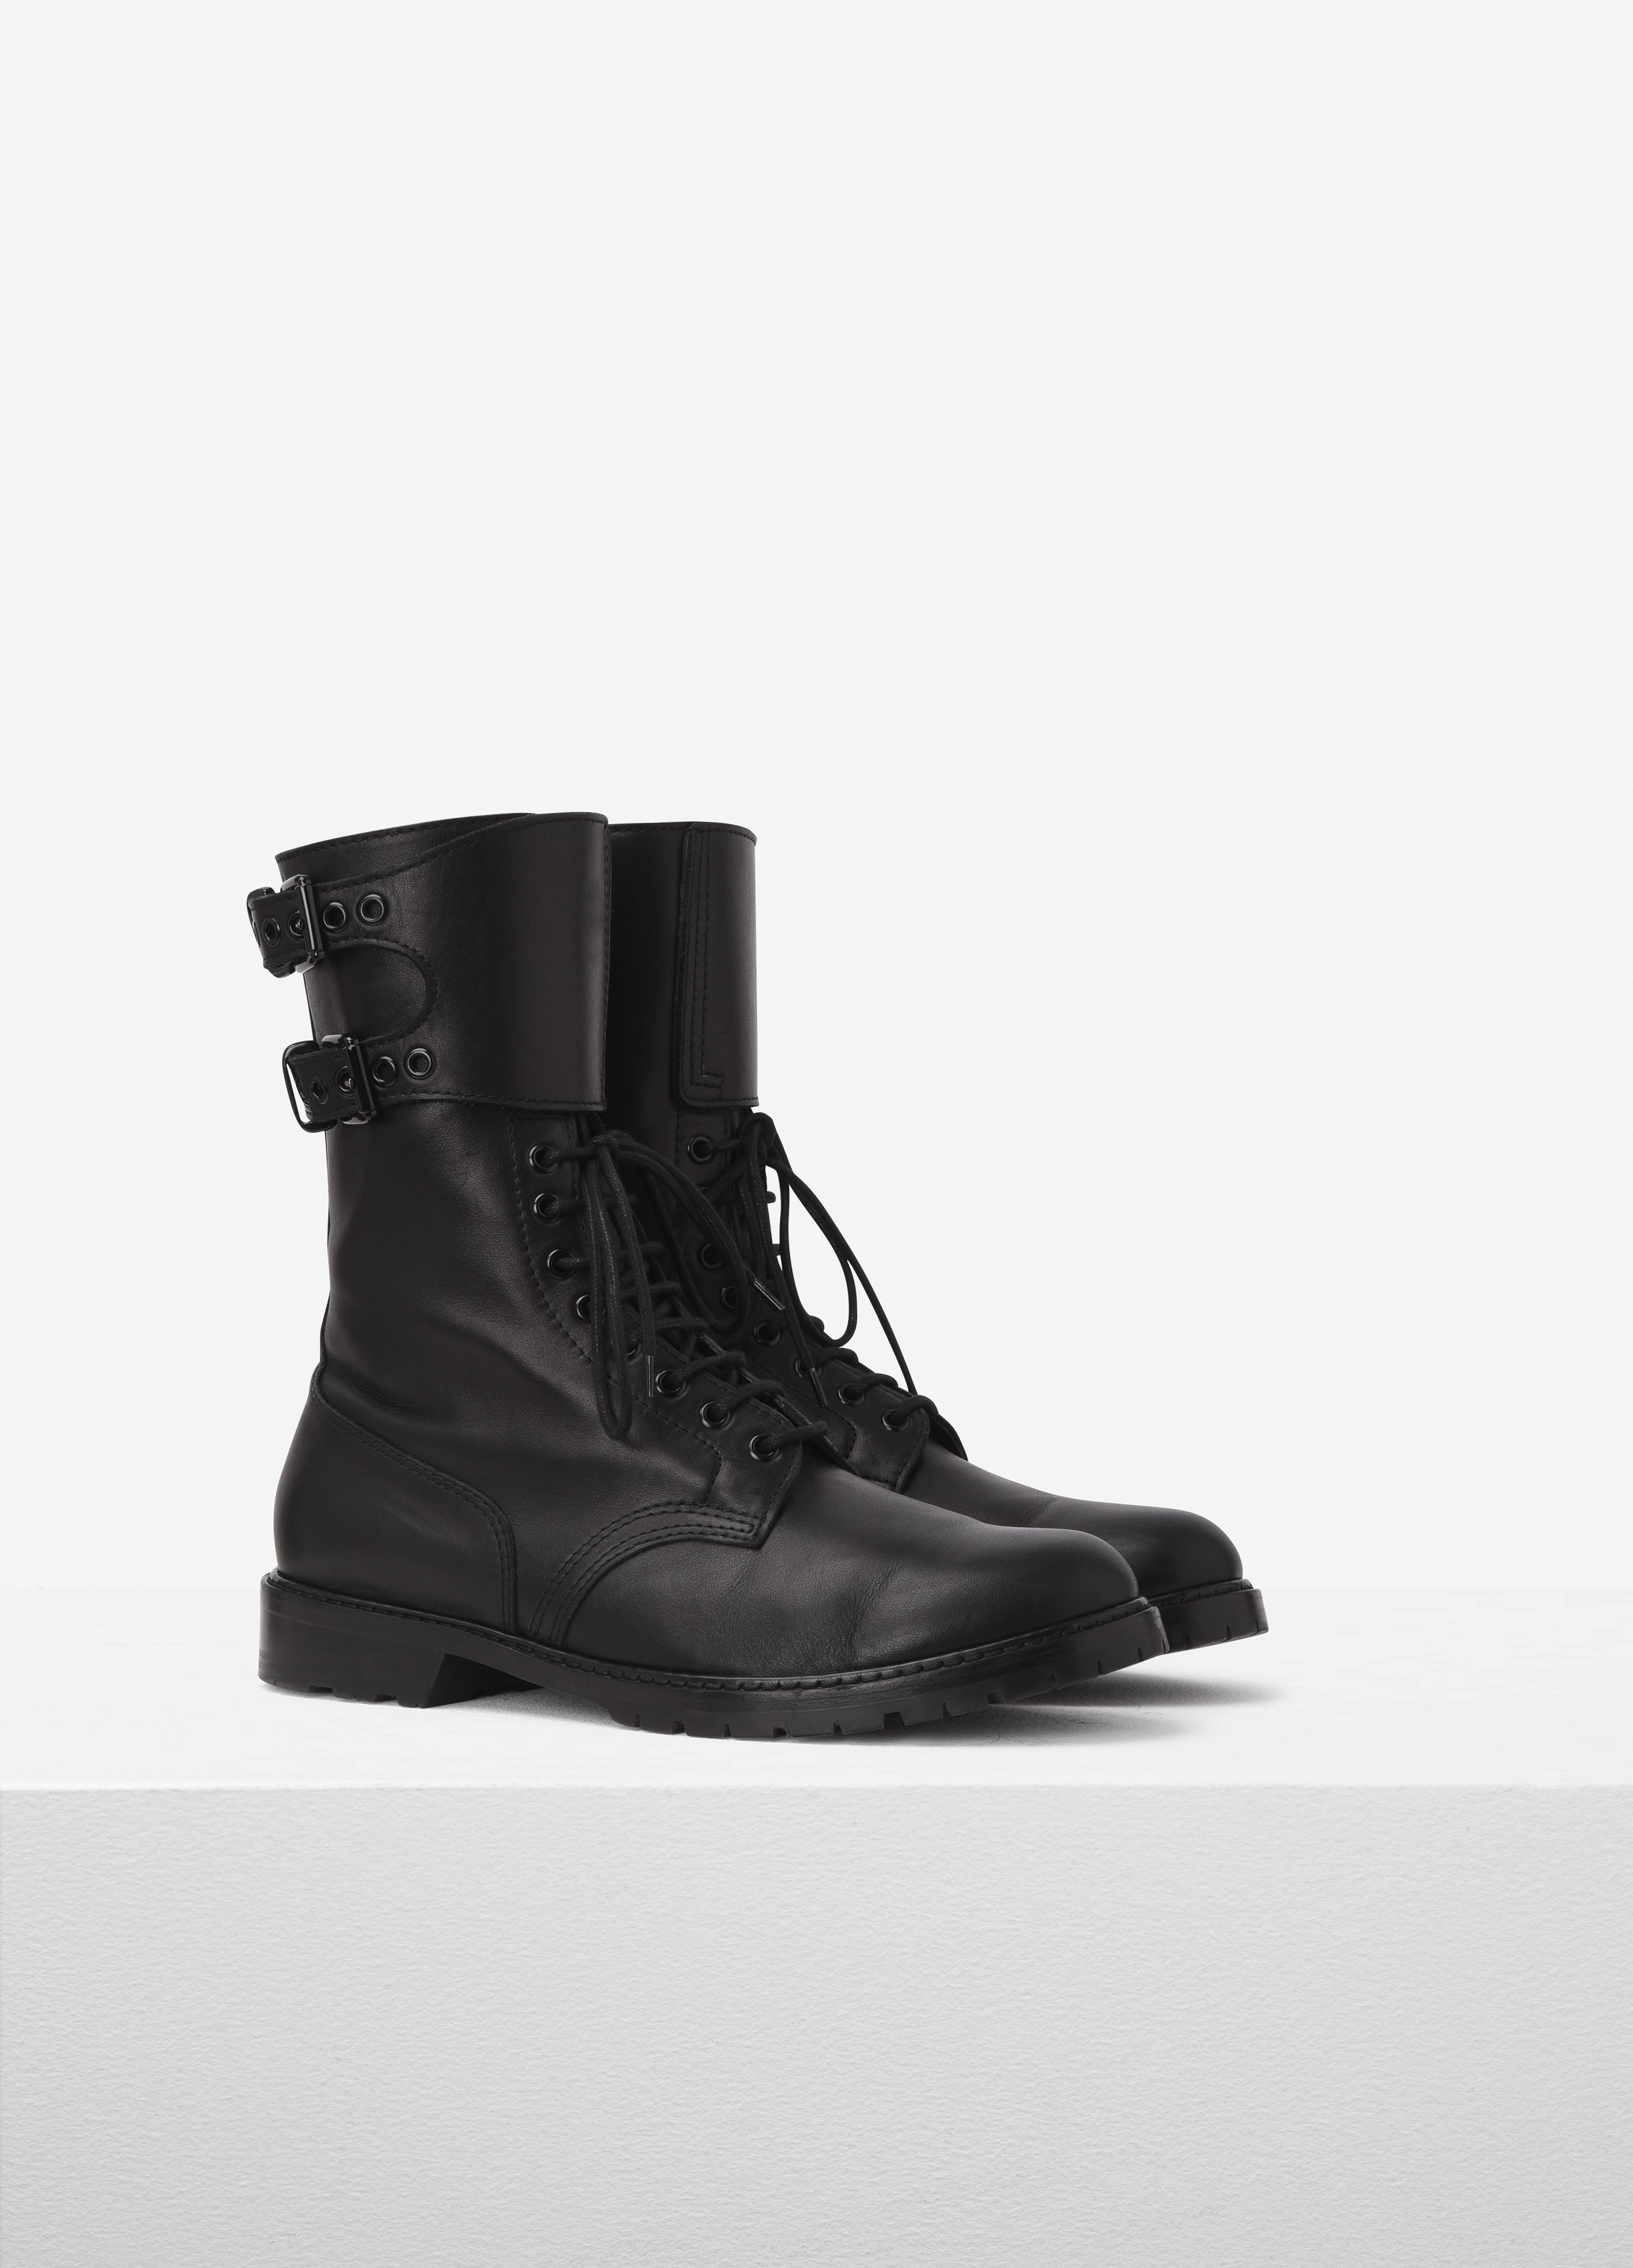 Leather combat boots | Barbara Bui